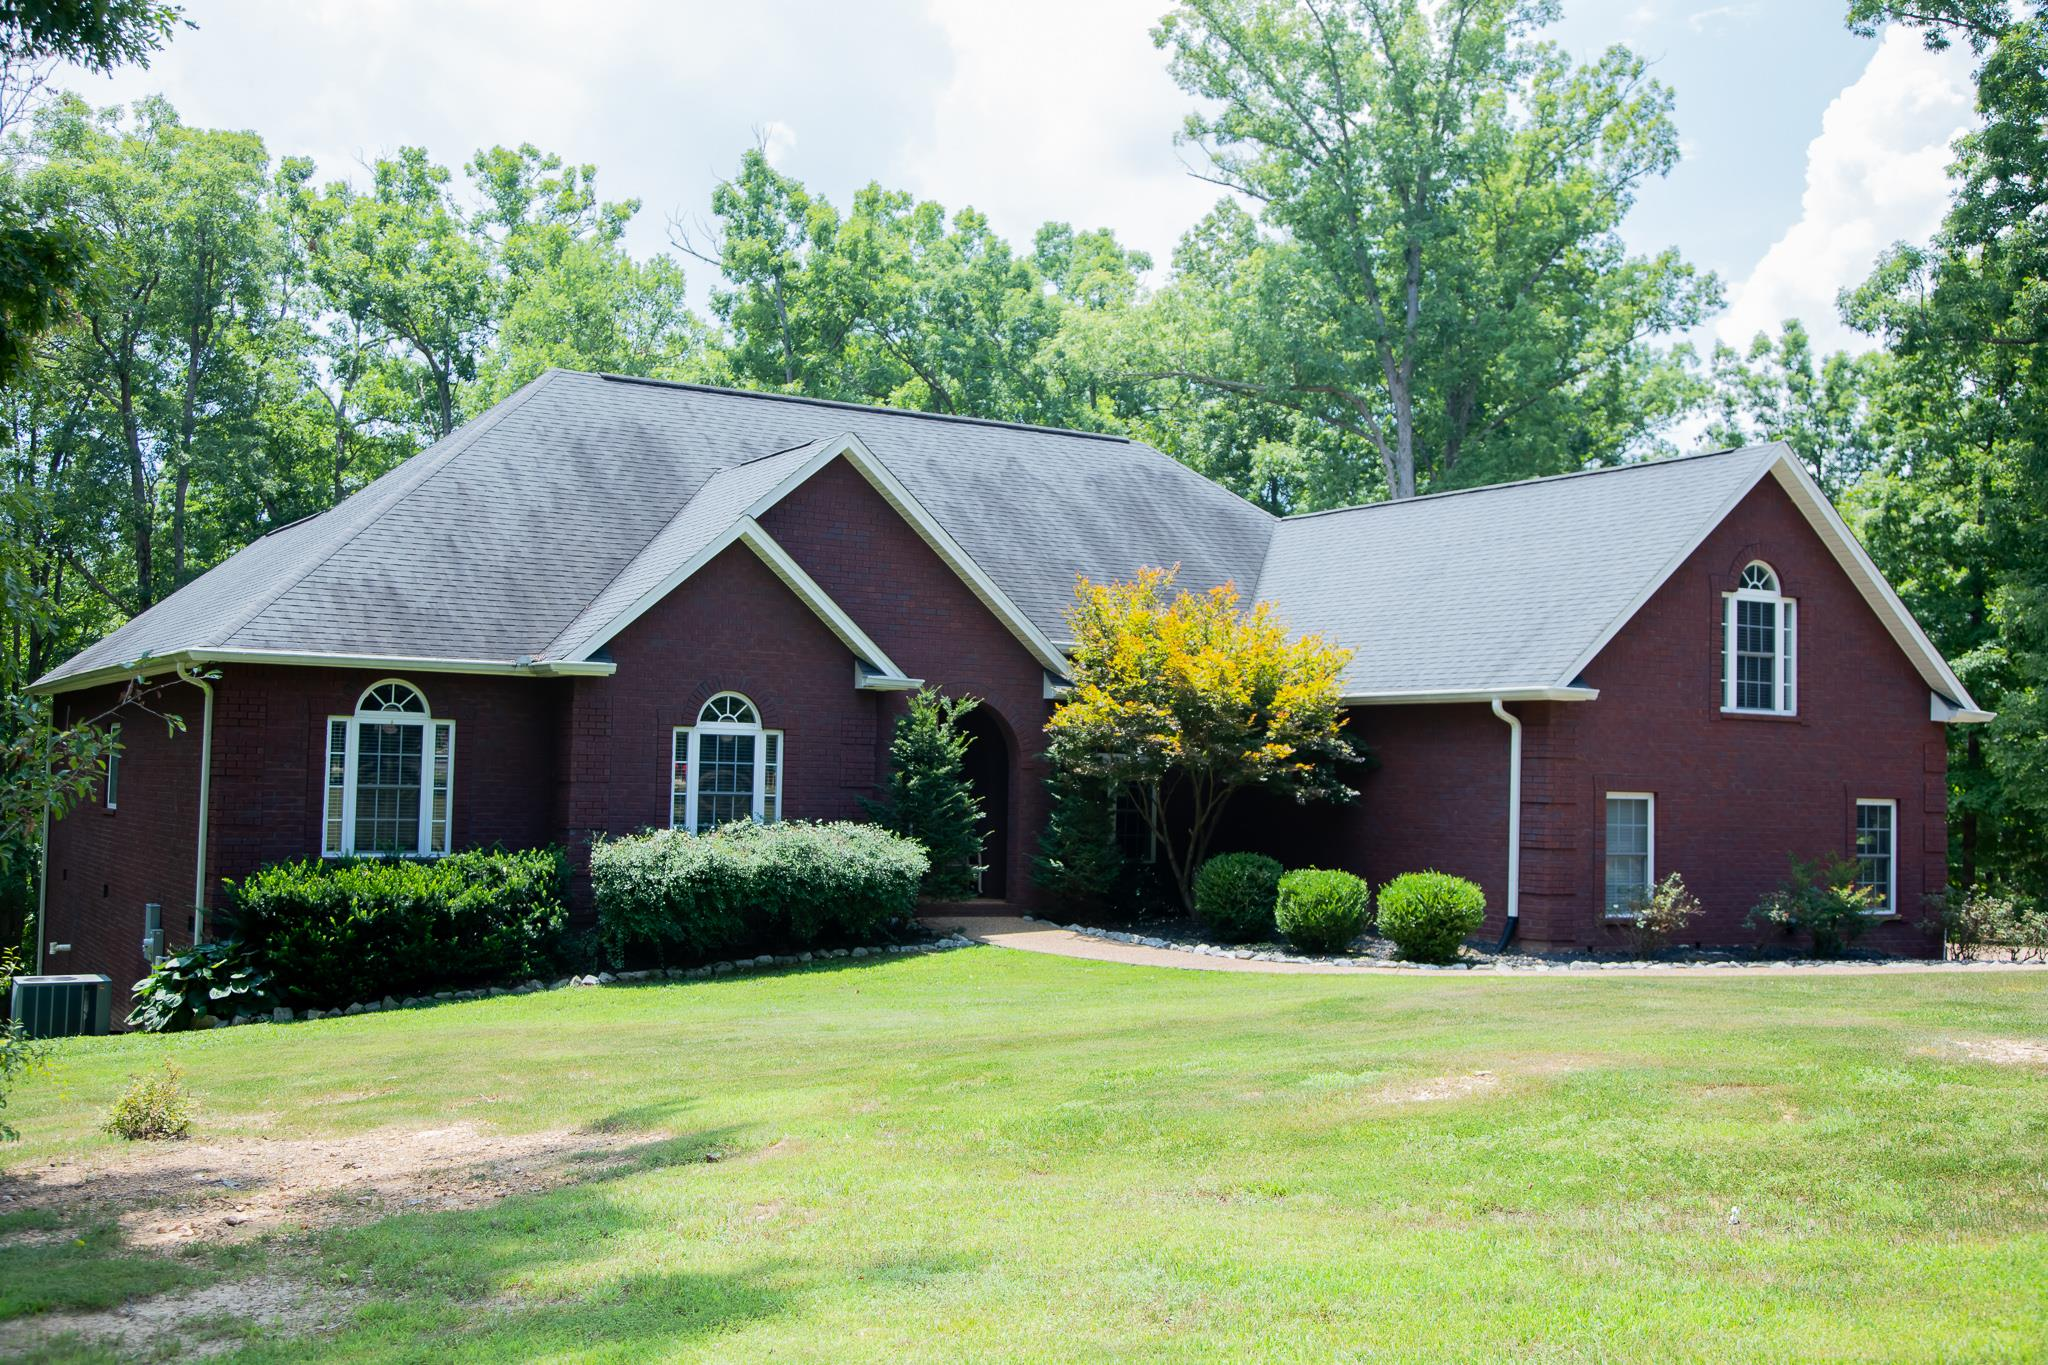 190 Jonathan Ct, Ashland City, TN 37015 - Ashland City, TN real estate listing